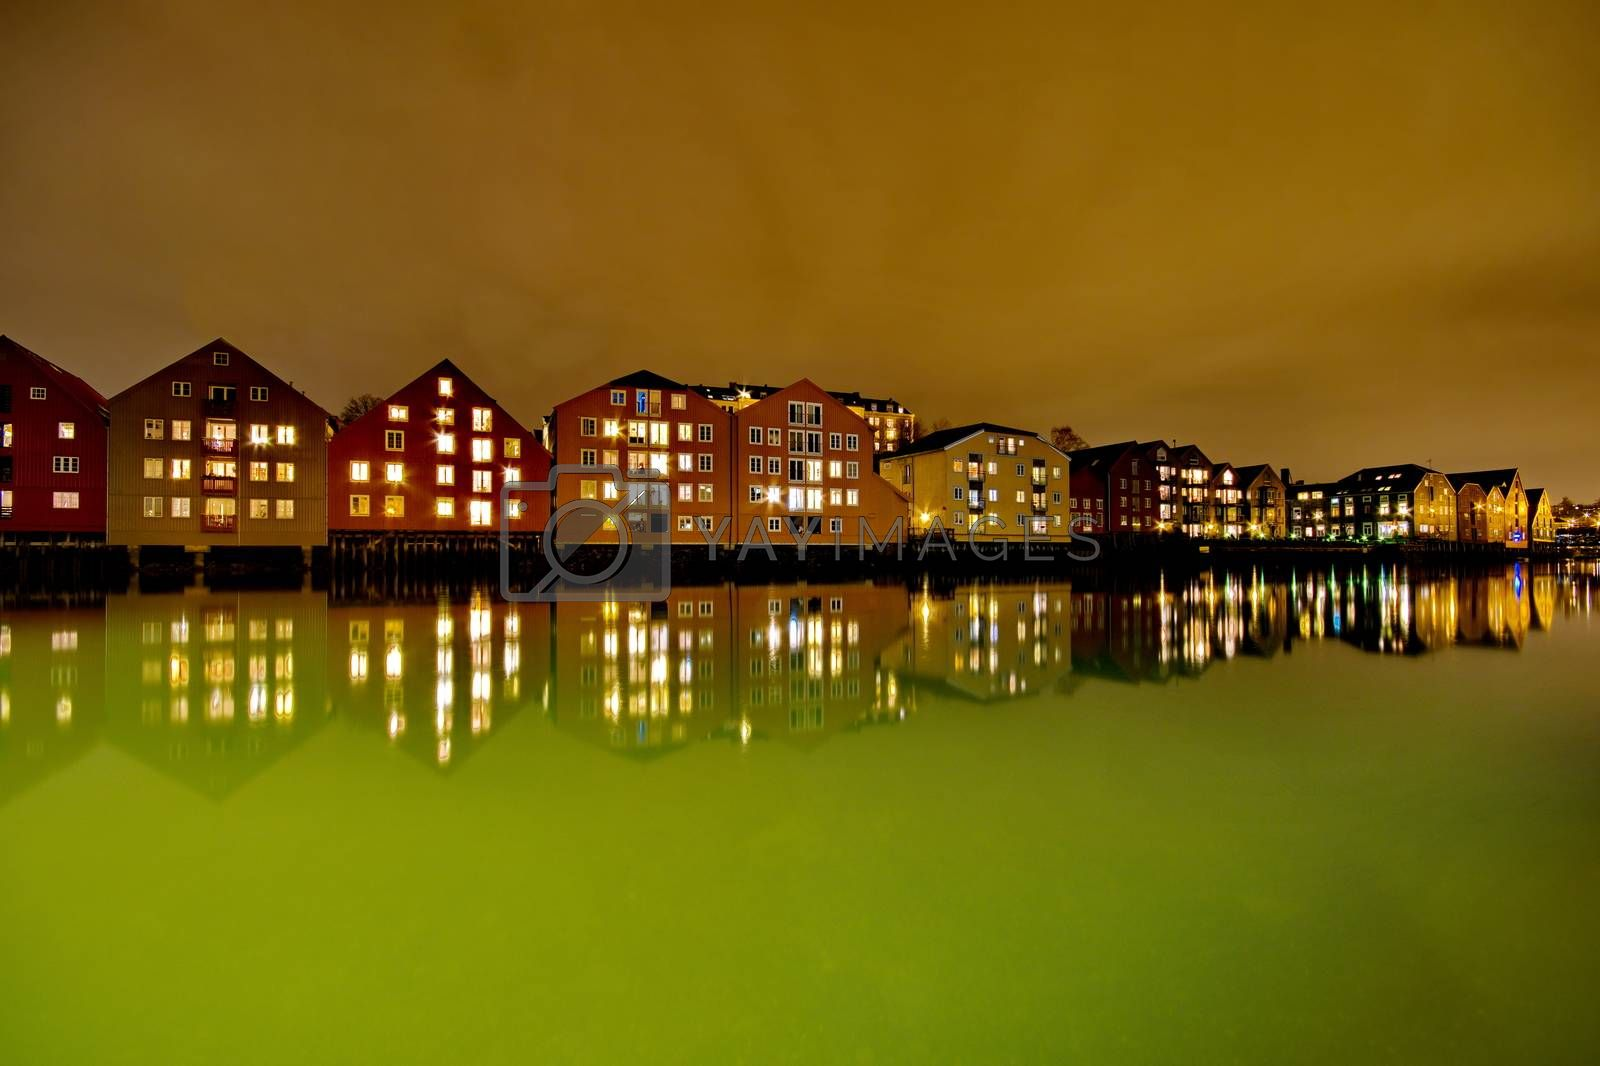 Royalty free image of Houses on the water at night in Trondheim, Norway by anderm